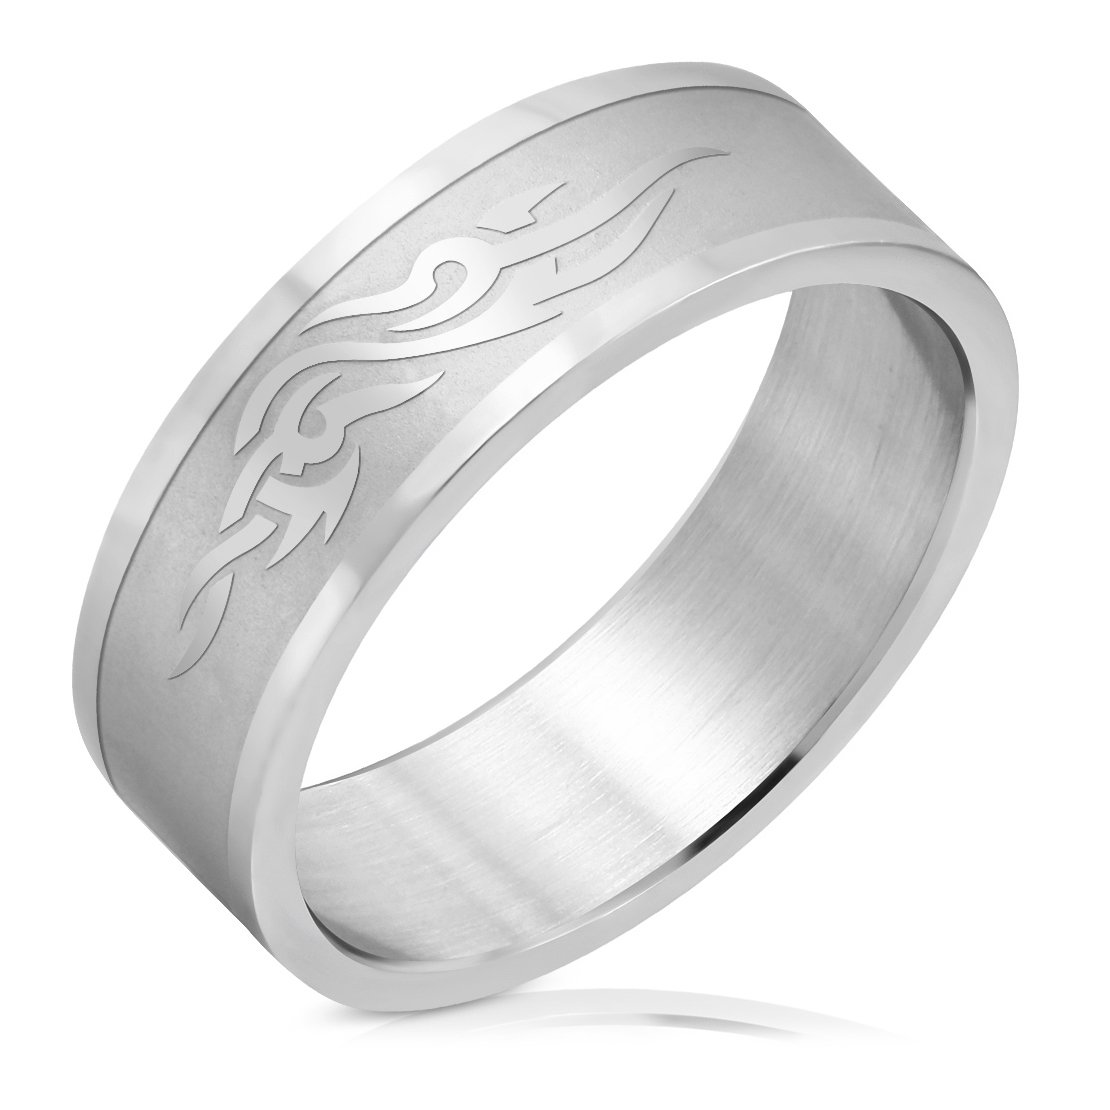 Stainless Steel Matte Finished Tribal Design Flat Band Ring